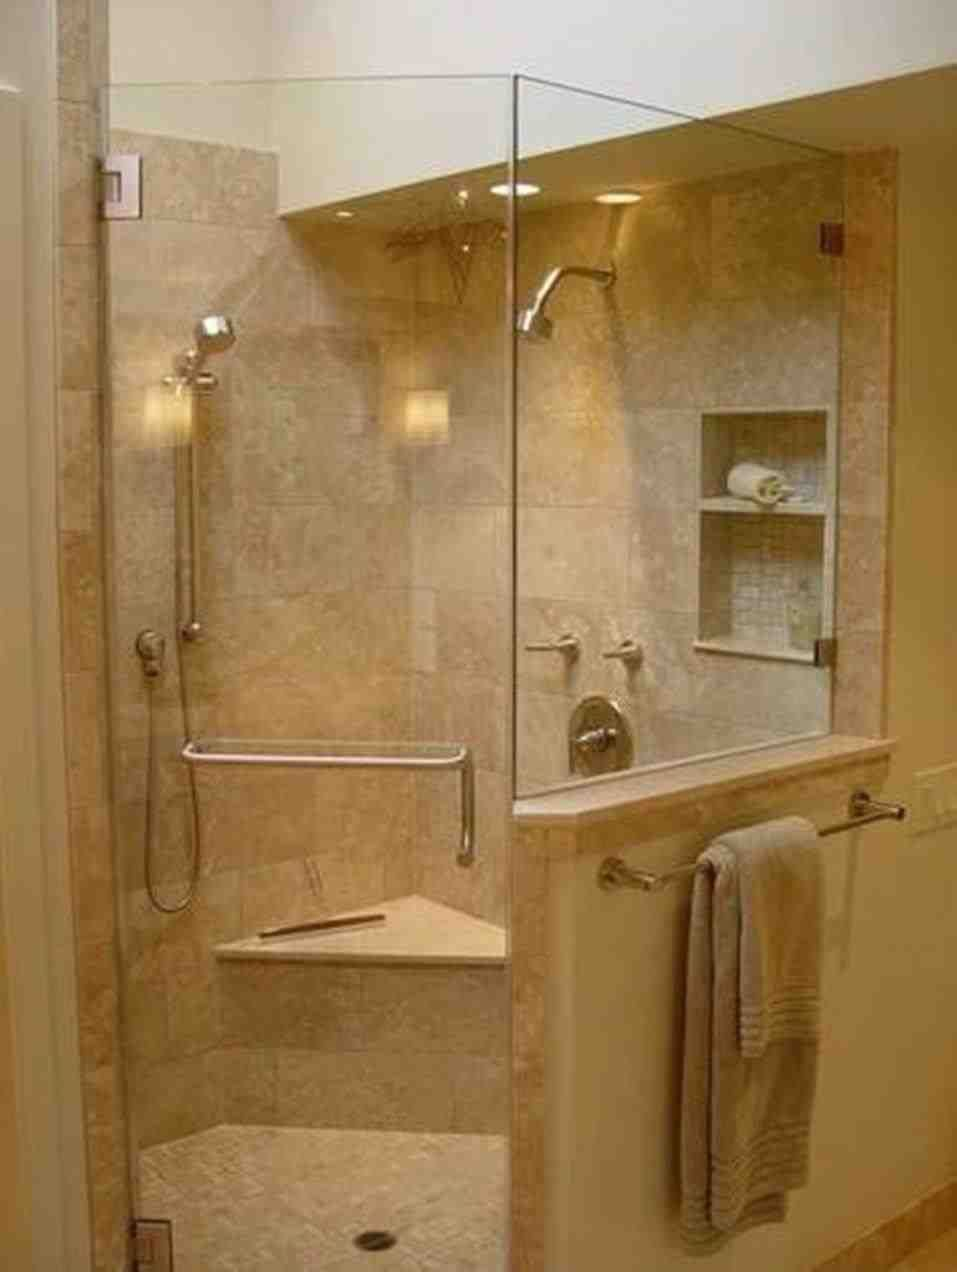 This Fiberglass Tub Shower Combo Image Of Bathroom Tub And Shower Ideas Rectangle White Porcelain Master Bathroom Shower Corner Shower Stalls Corner Shower